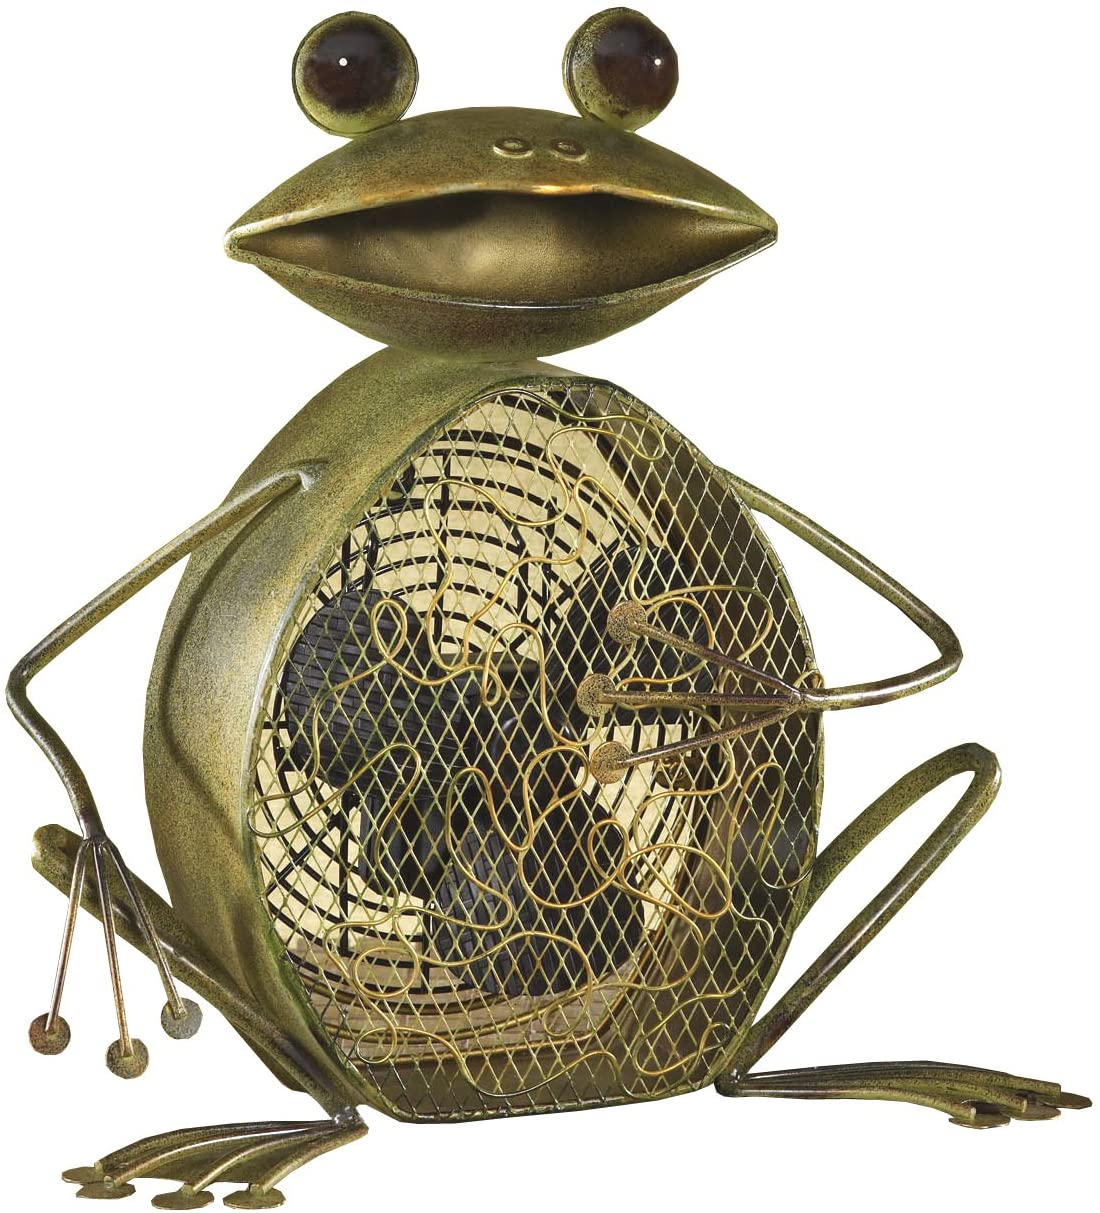 DecoBREEZE Decorative Table Fan, Desk Fan, Two Speed Electric Tabletop Fan, Figurine Fan, 7 inch, Frog